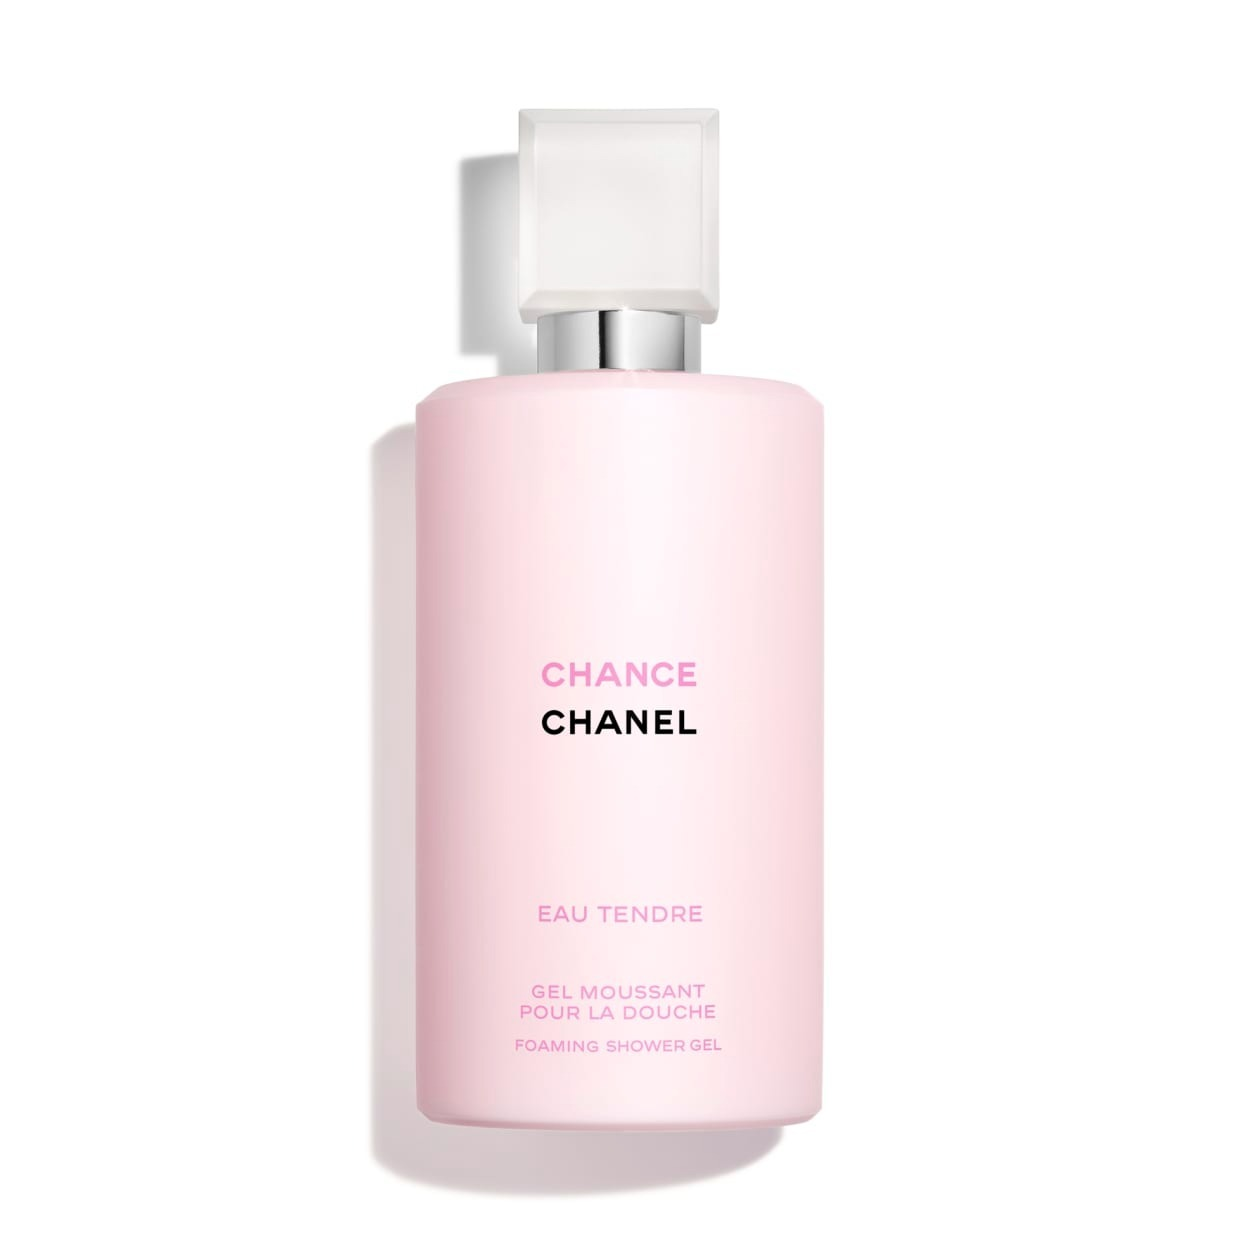 Chanel Chance Eau Tendre Foaming Shower Gel 200ml.jpg